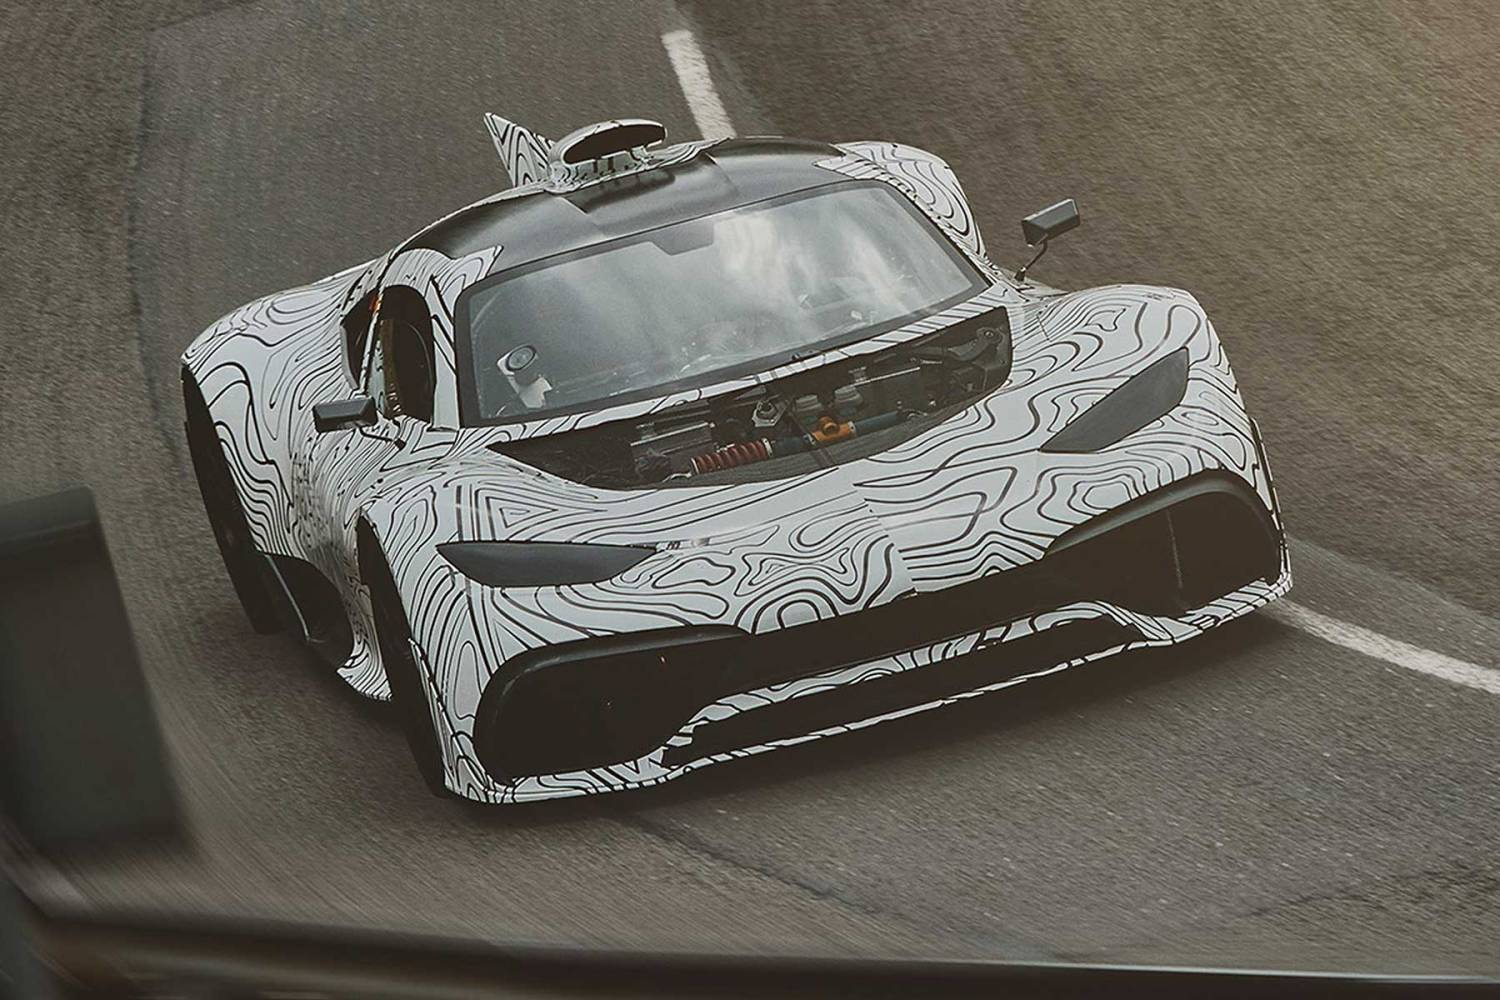 Mercedes-AMG Project One prototype